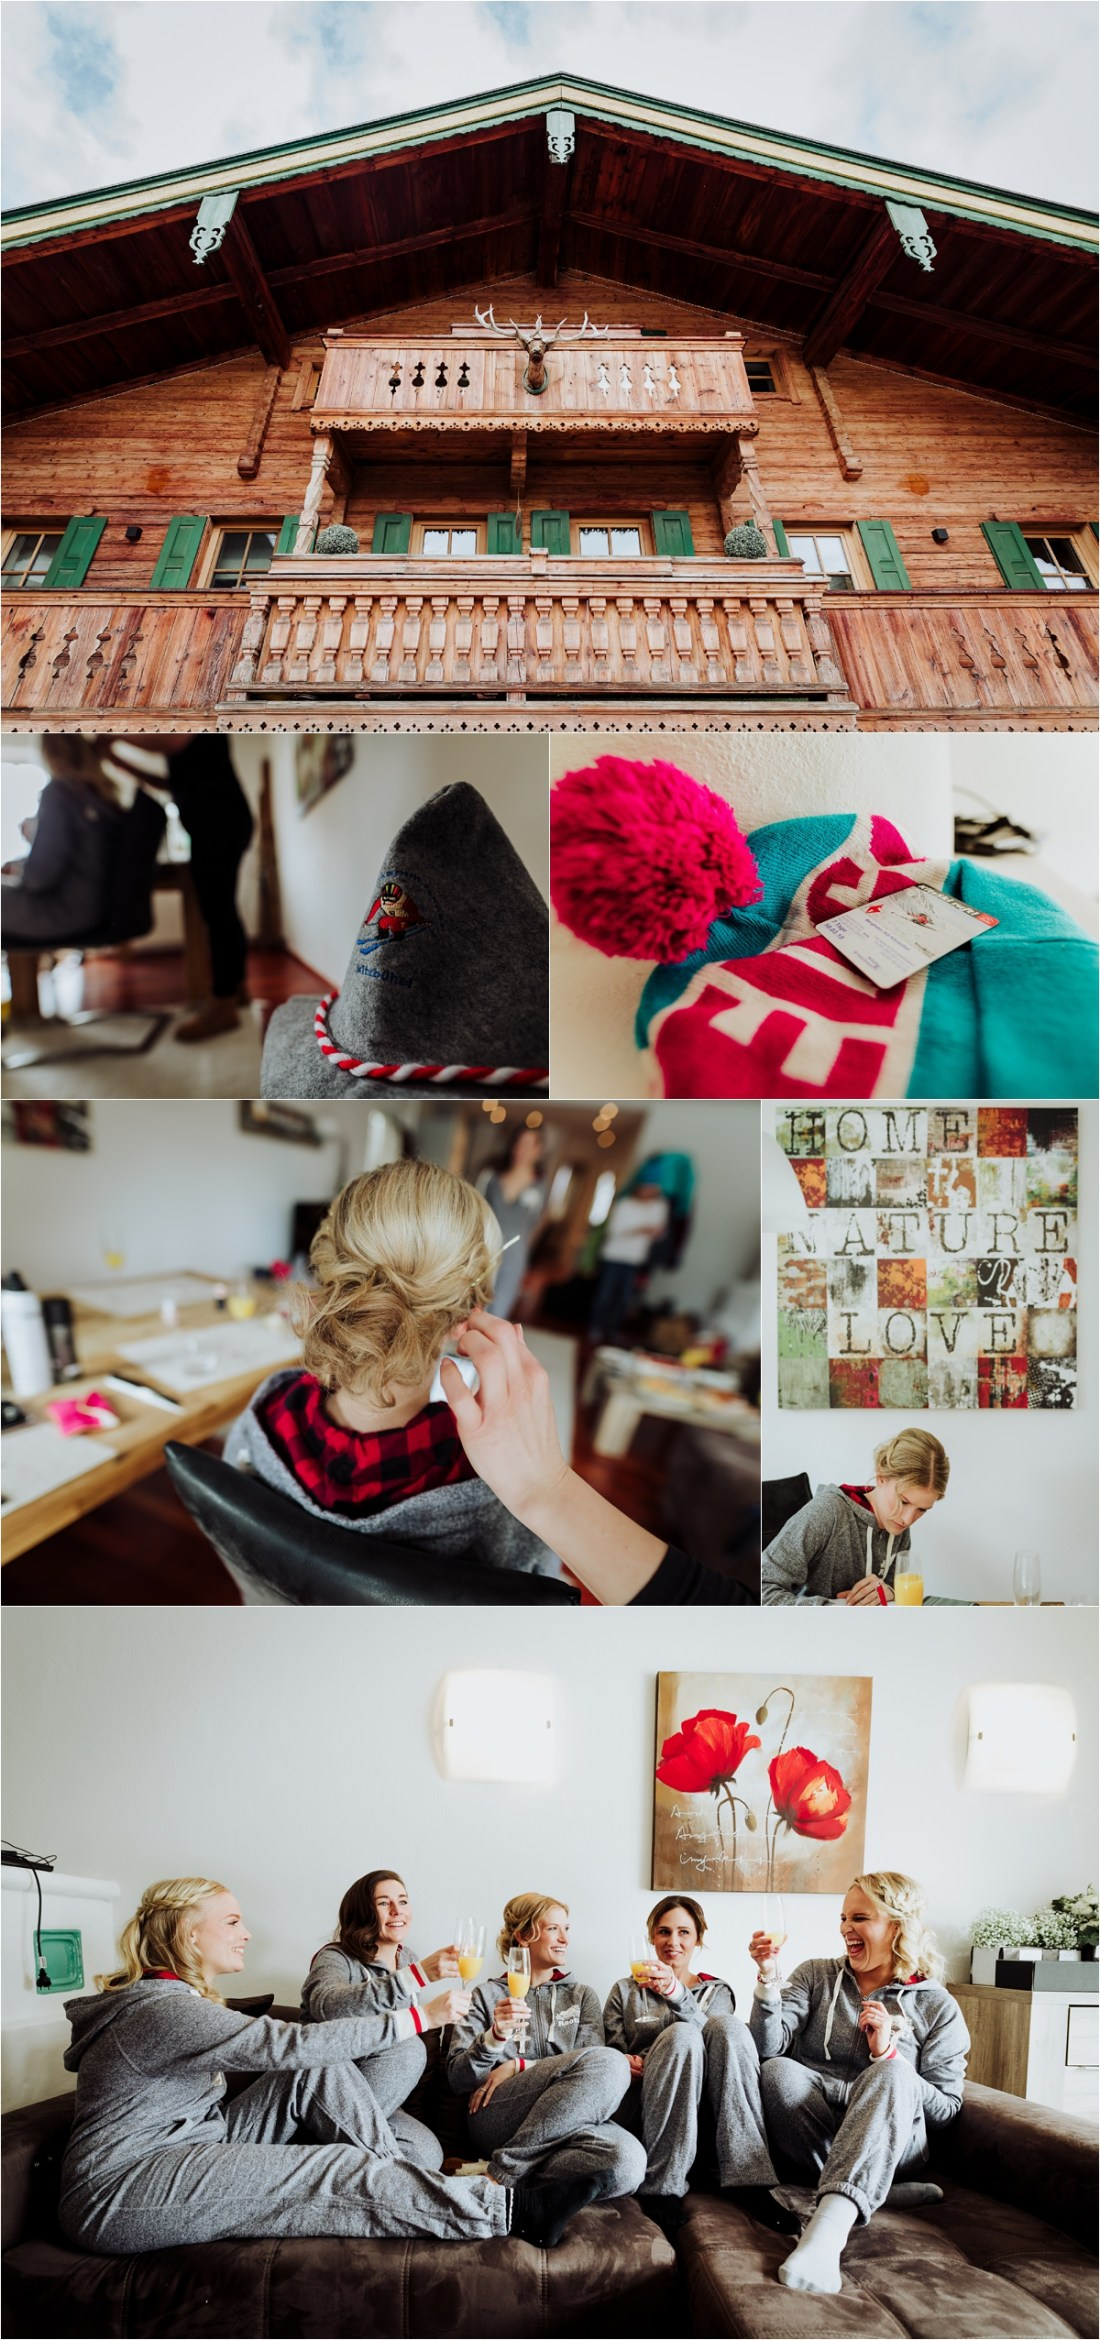 Emily & her bridesmaids getting ready at their ski chalet in Kitzbühel by Wild Connections Photography